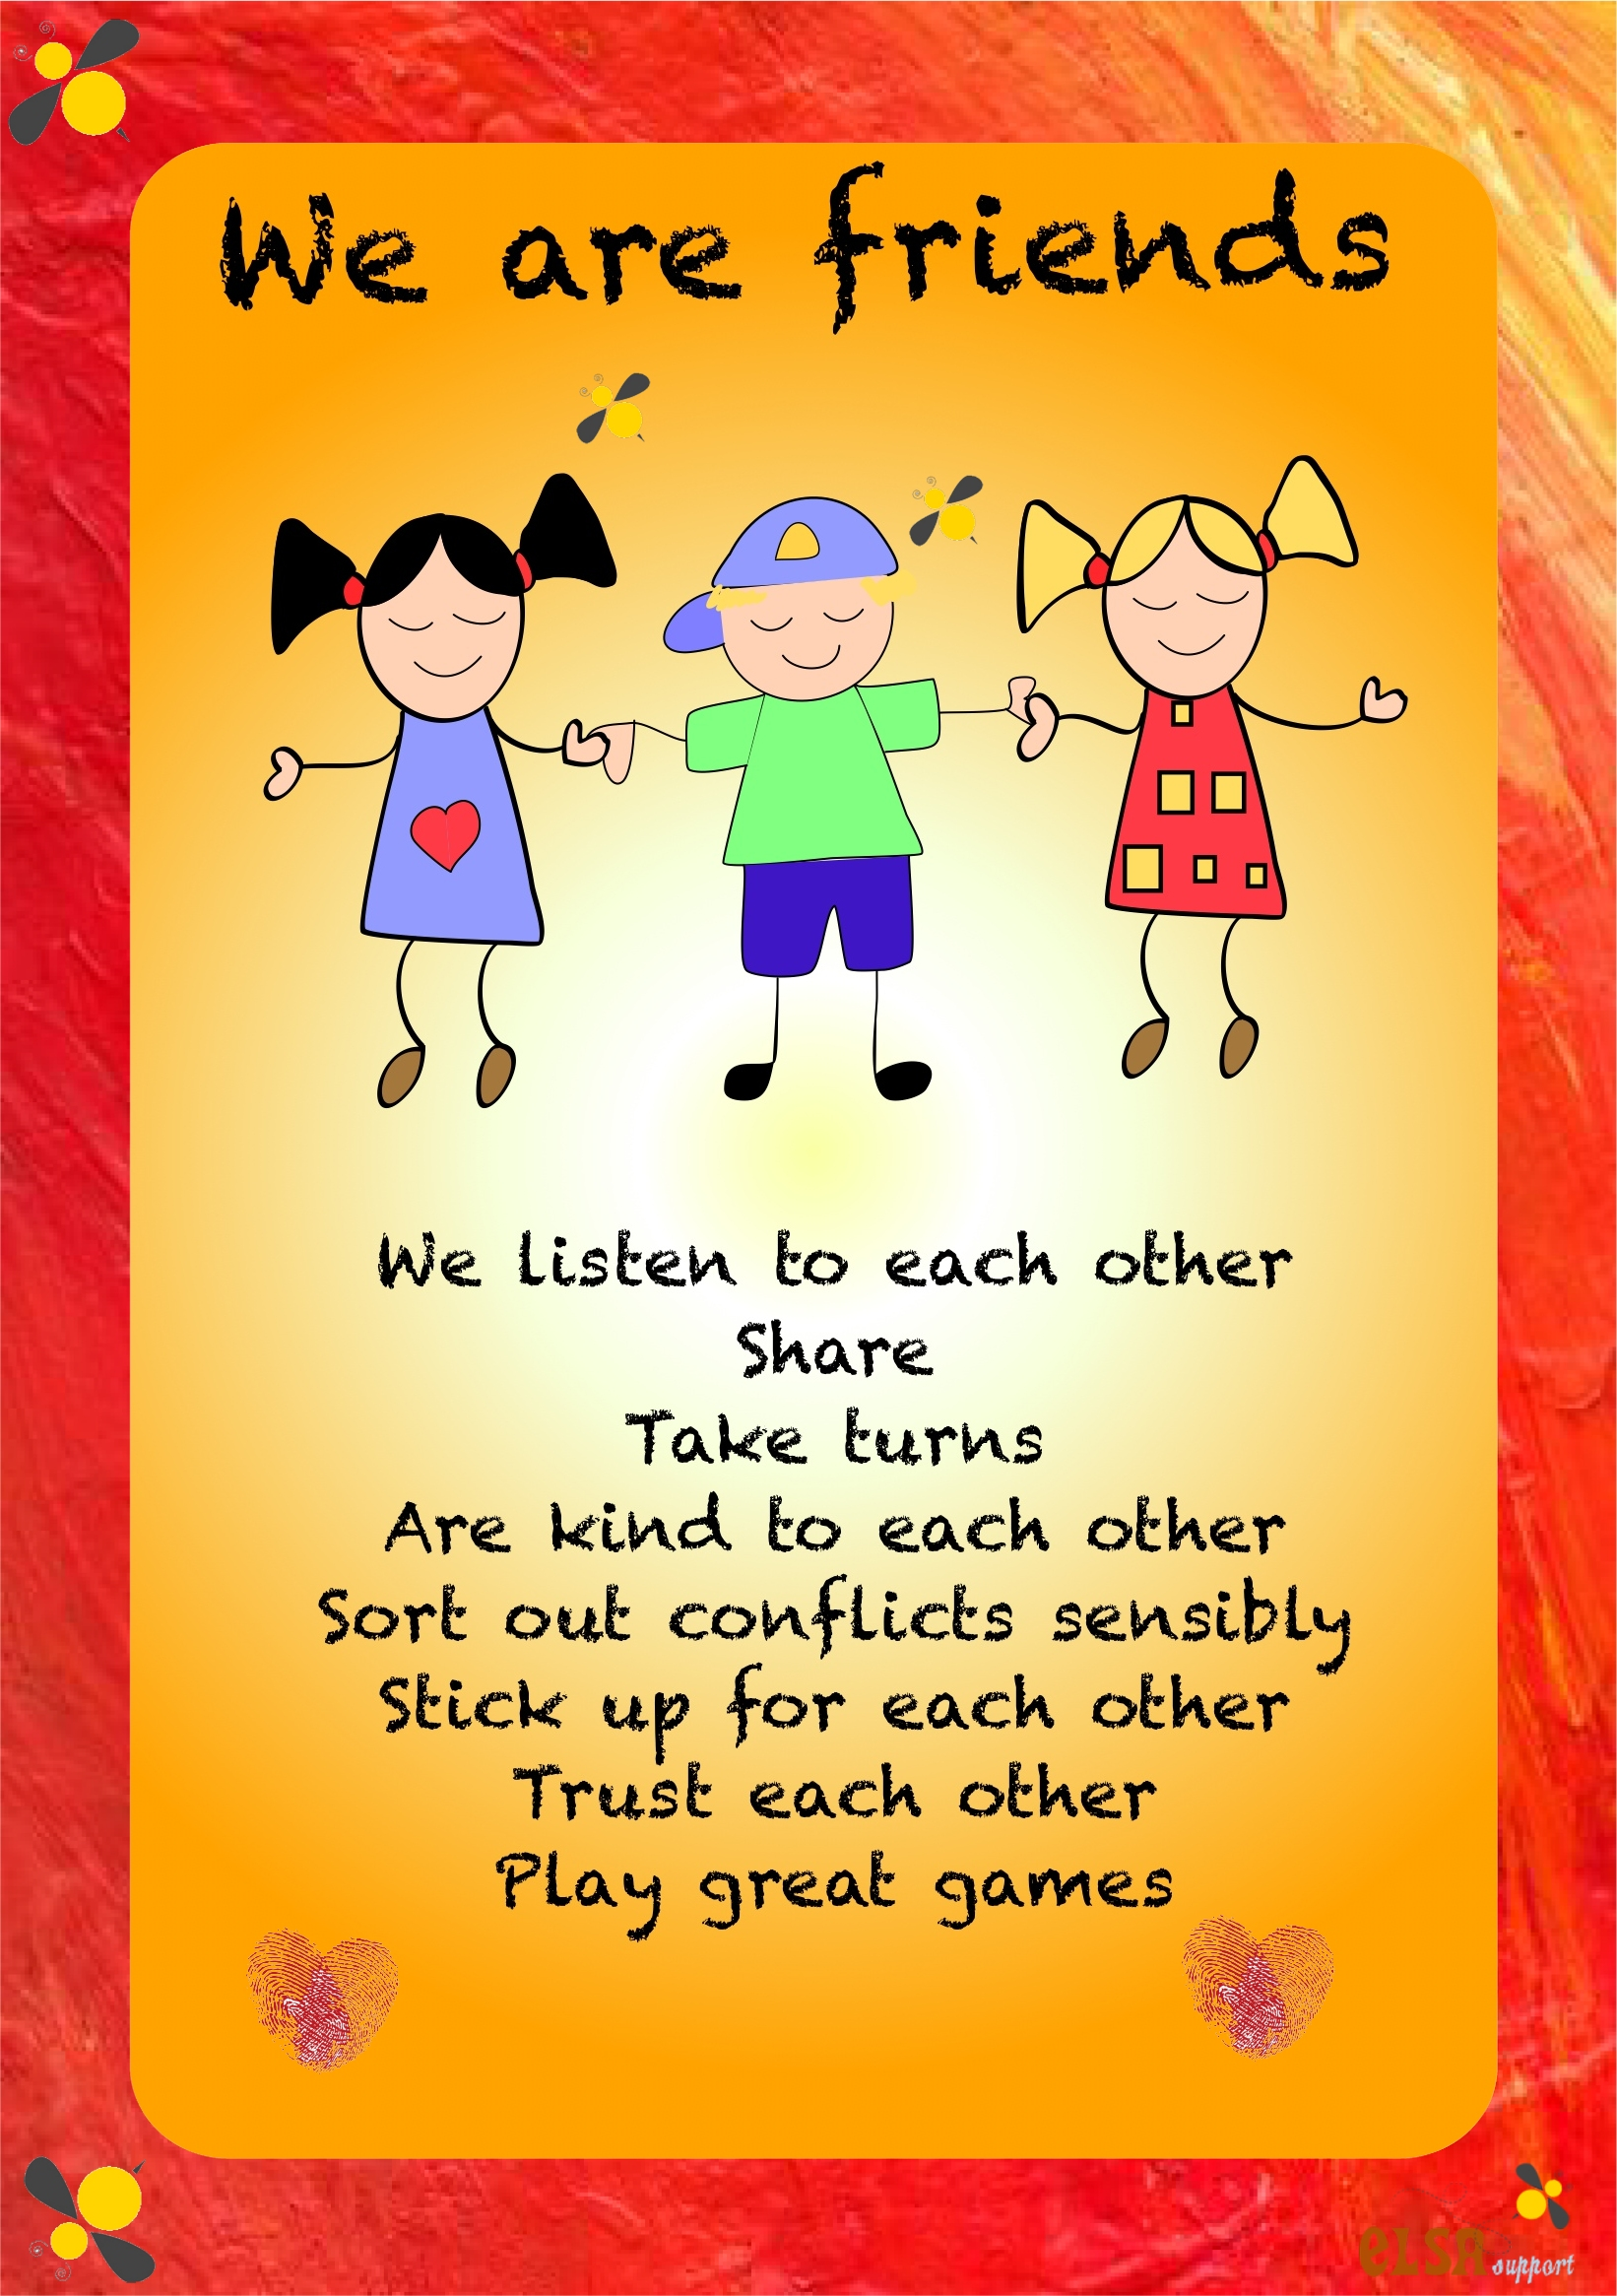 Friendship activities - Elsa Support Friends With Kids Poster